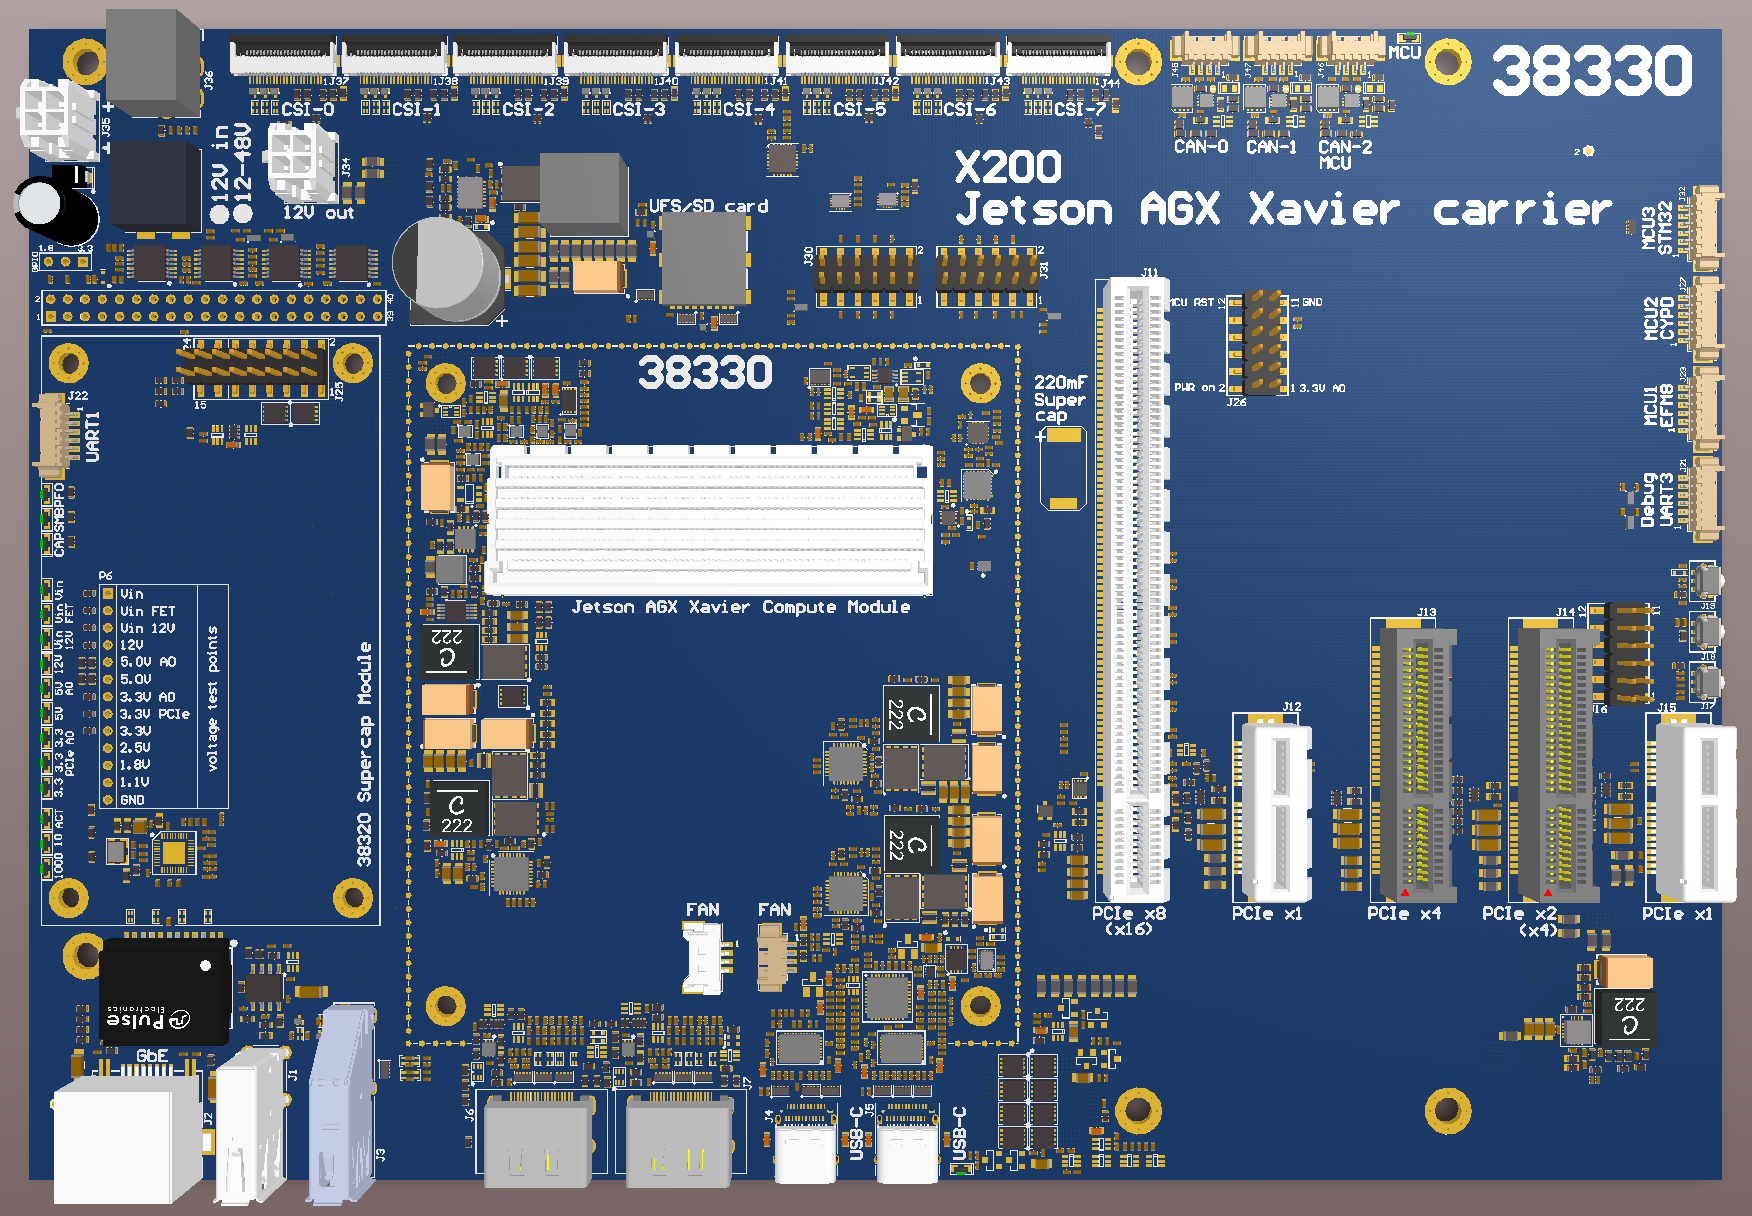 Auvidea Audio Video Media Iphone 4 Diagram Logic Board Jetson Agx Xavier Carrier